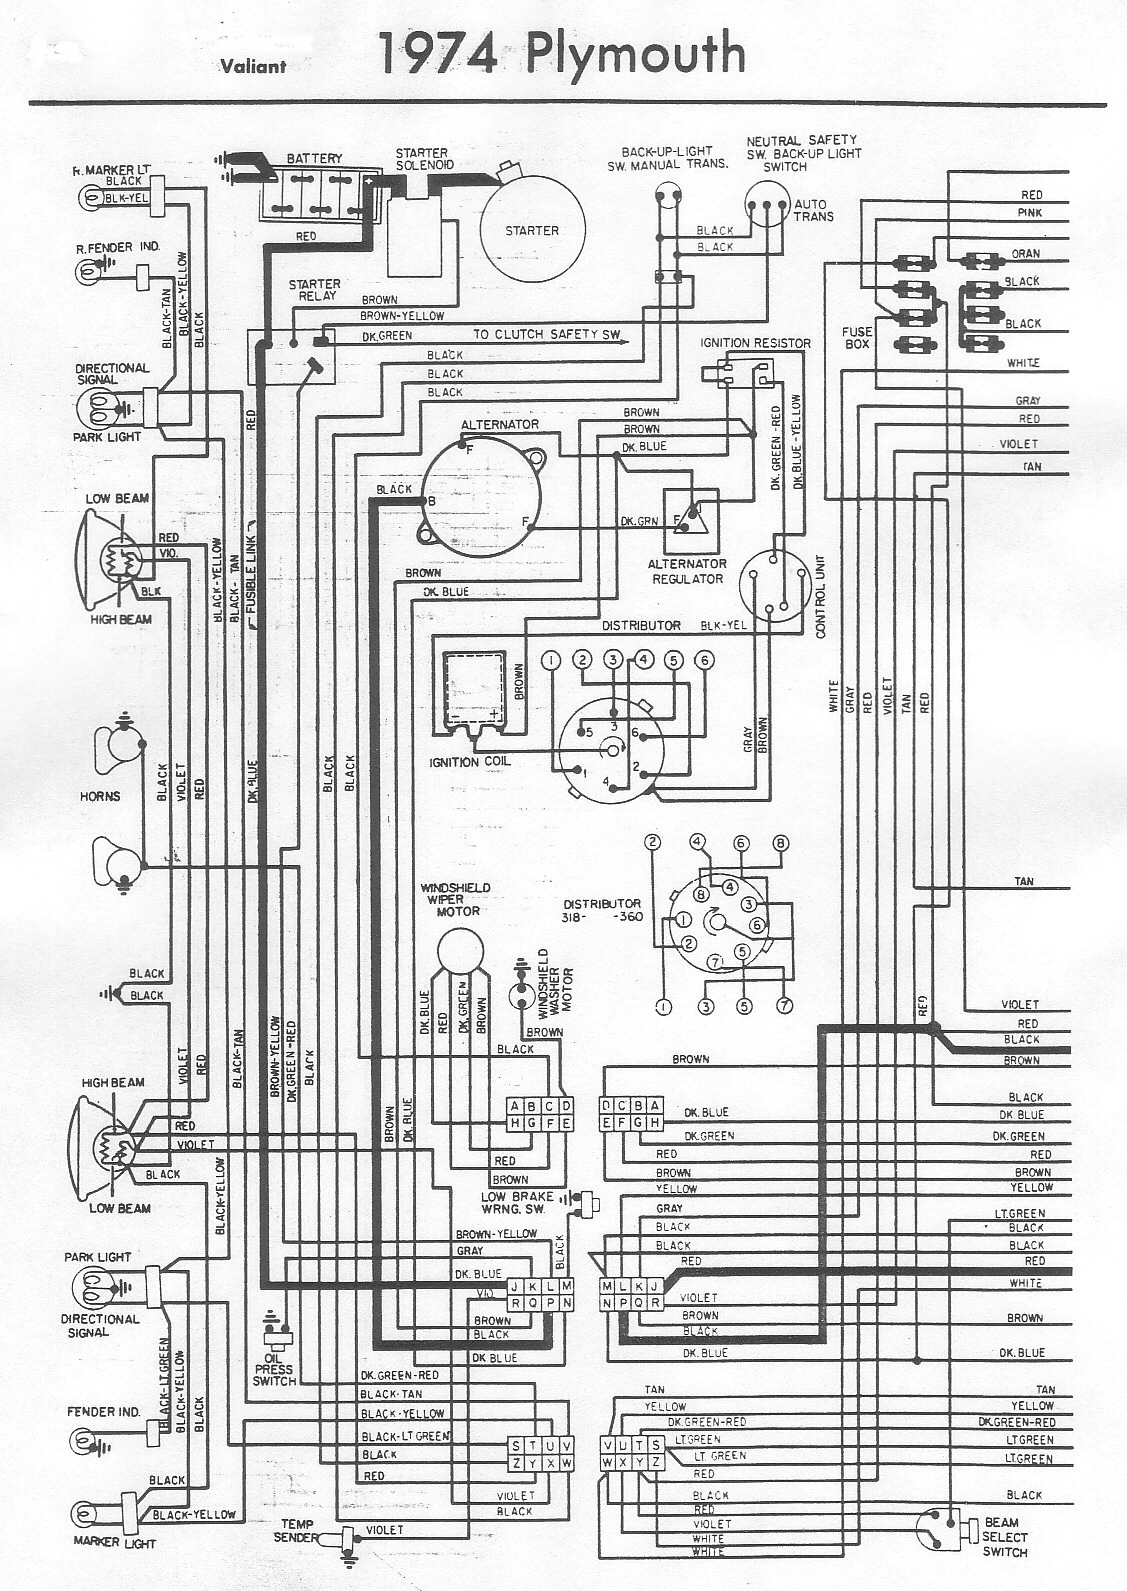 Plymouth Lights Wiring Diagram : Dodge dart wiring diagram free engine image for